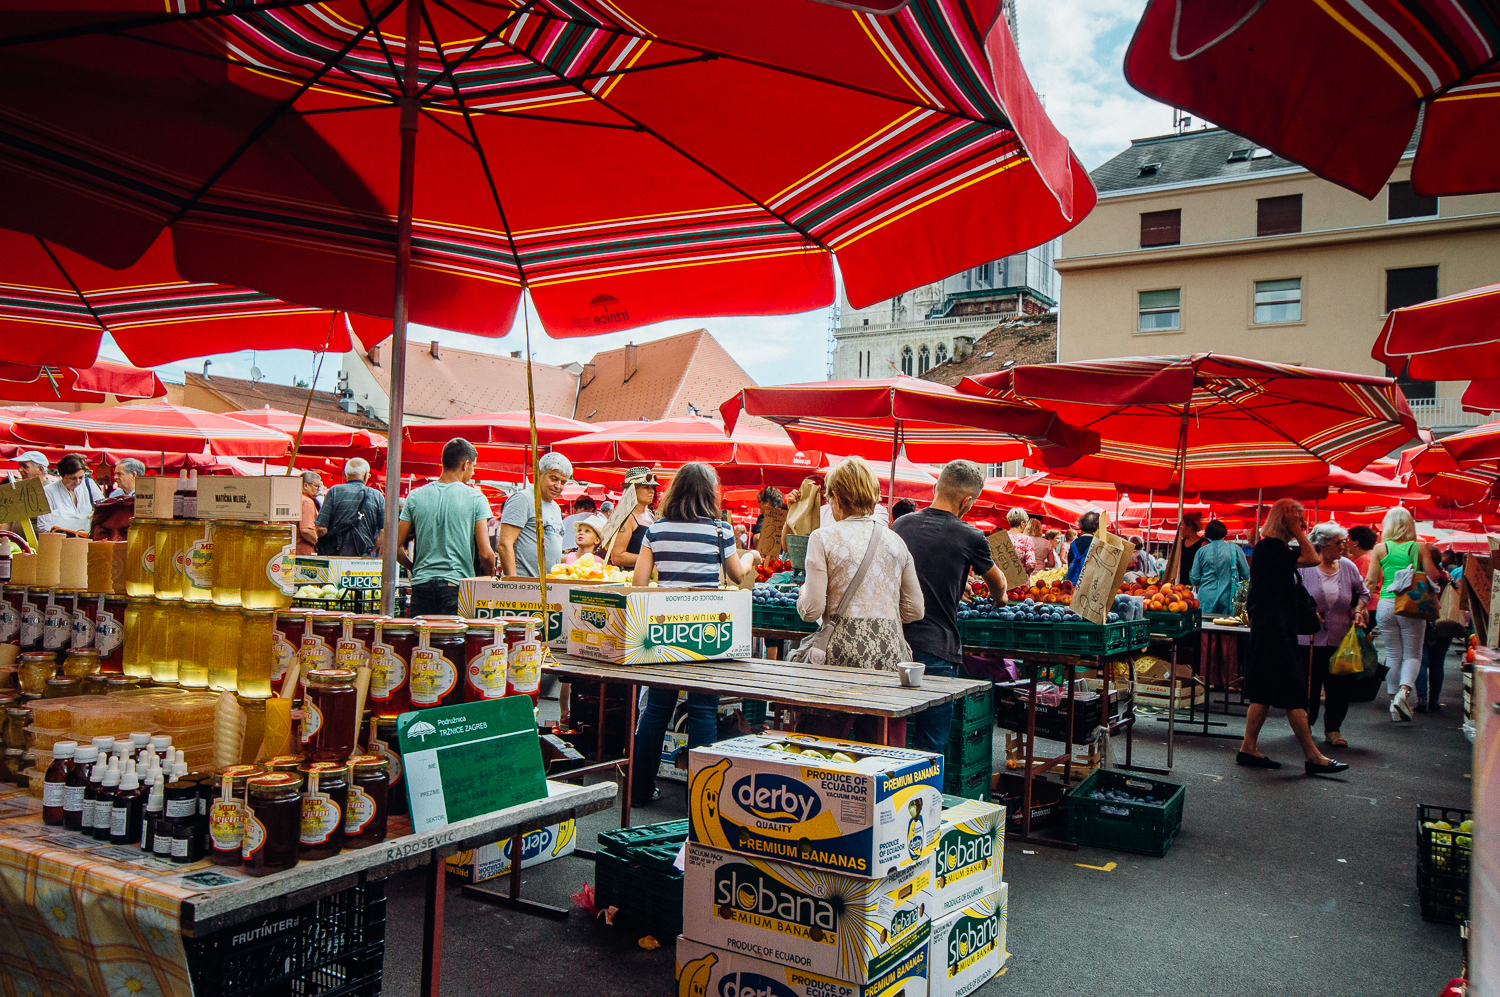 This market has all kinds of different tables from olive oil to local cheese to fruit and meat to herbs.